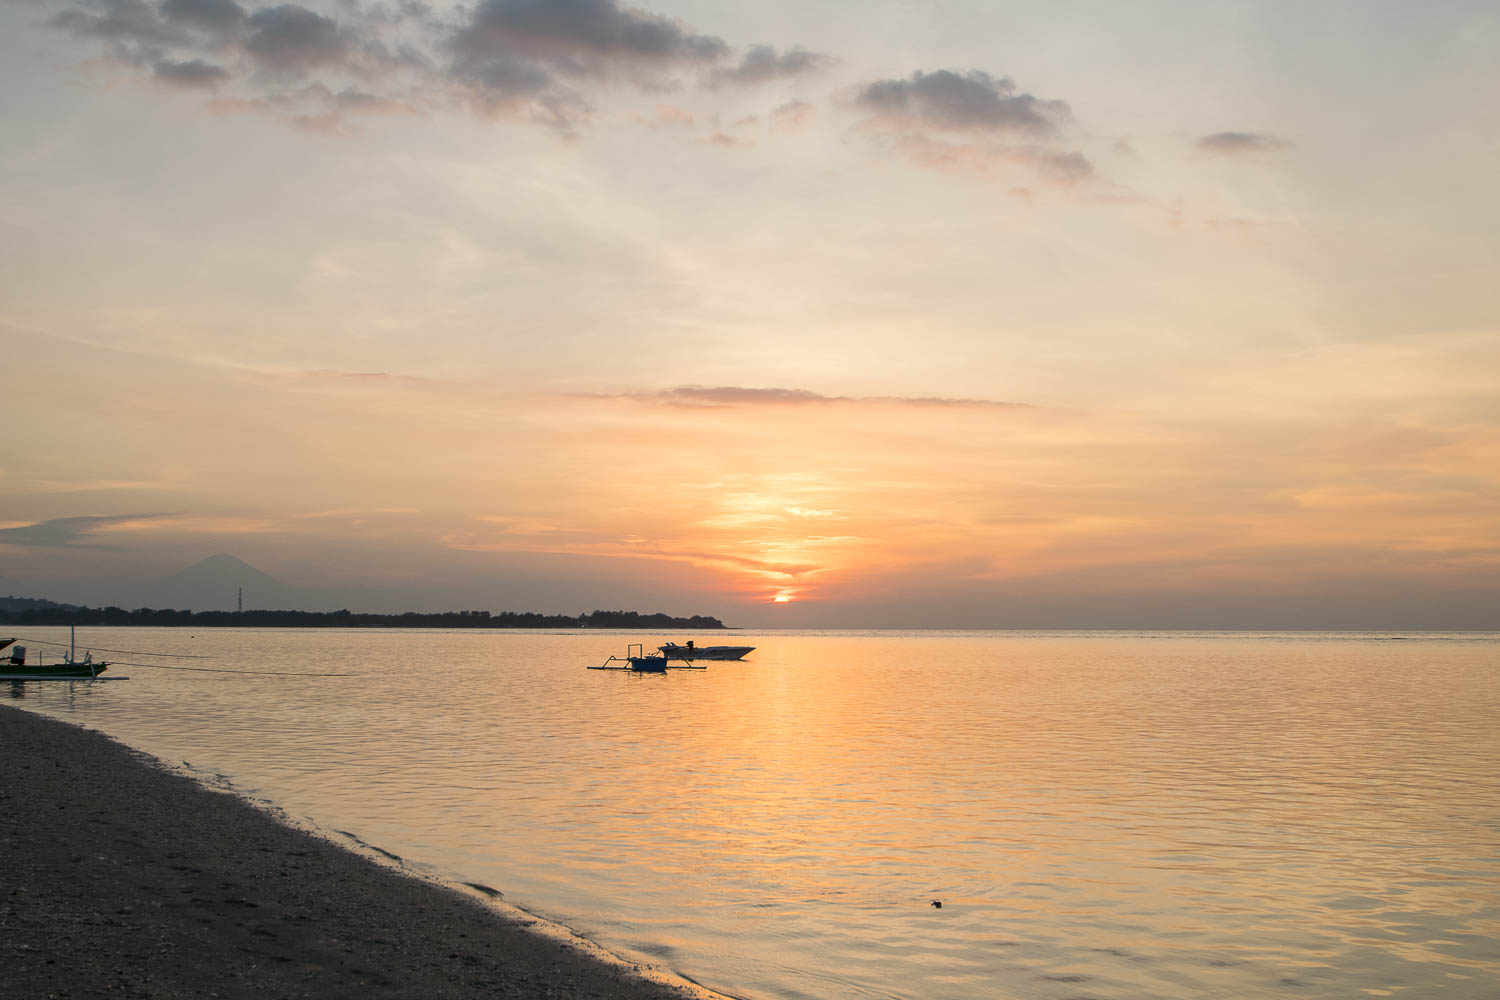 Sunset sur Gili Air, Bali